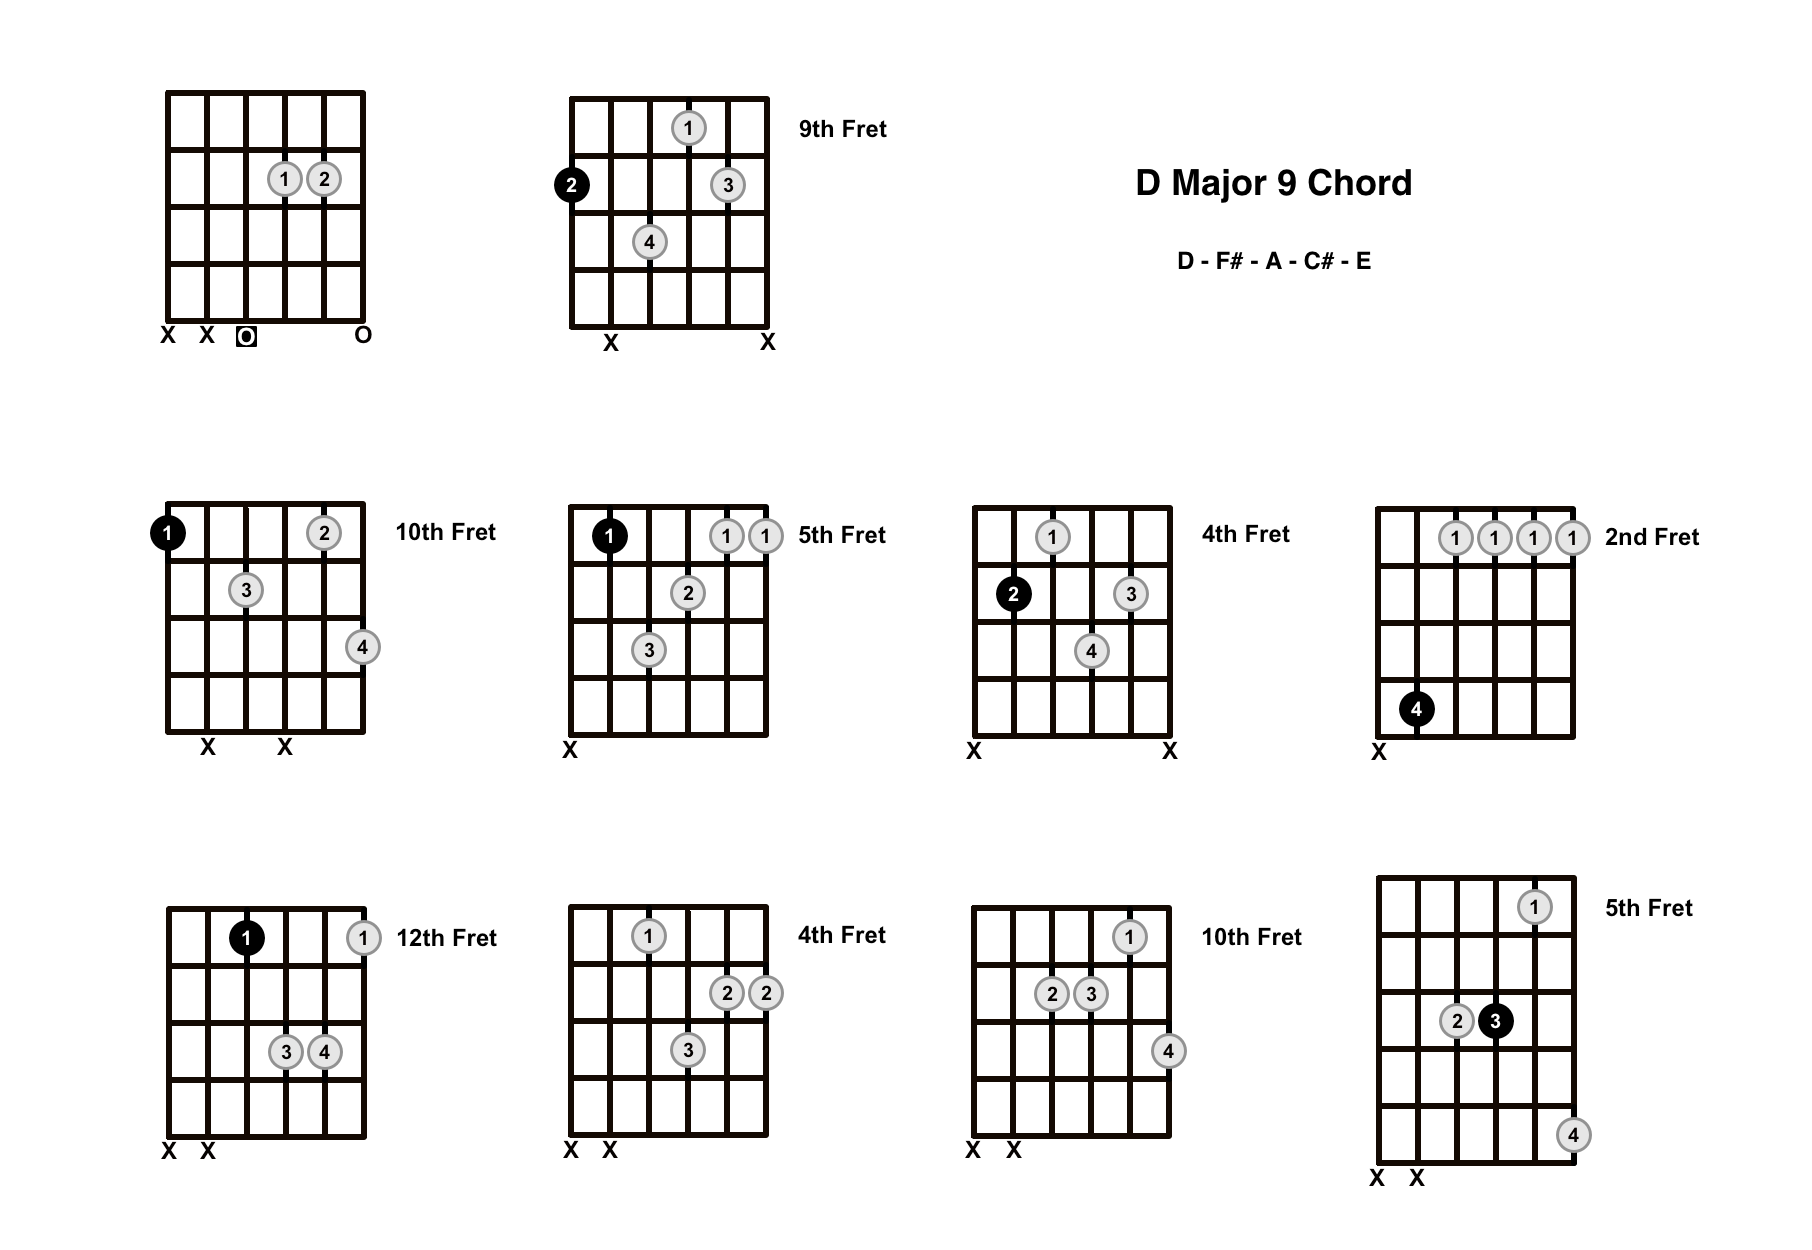 D Major 9 Chord On The Guitar (D Maj 9) – Diagrams, Finger Positions and Theory